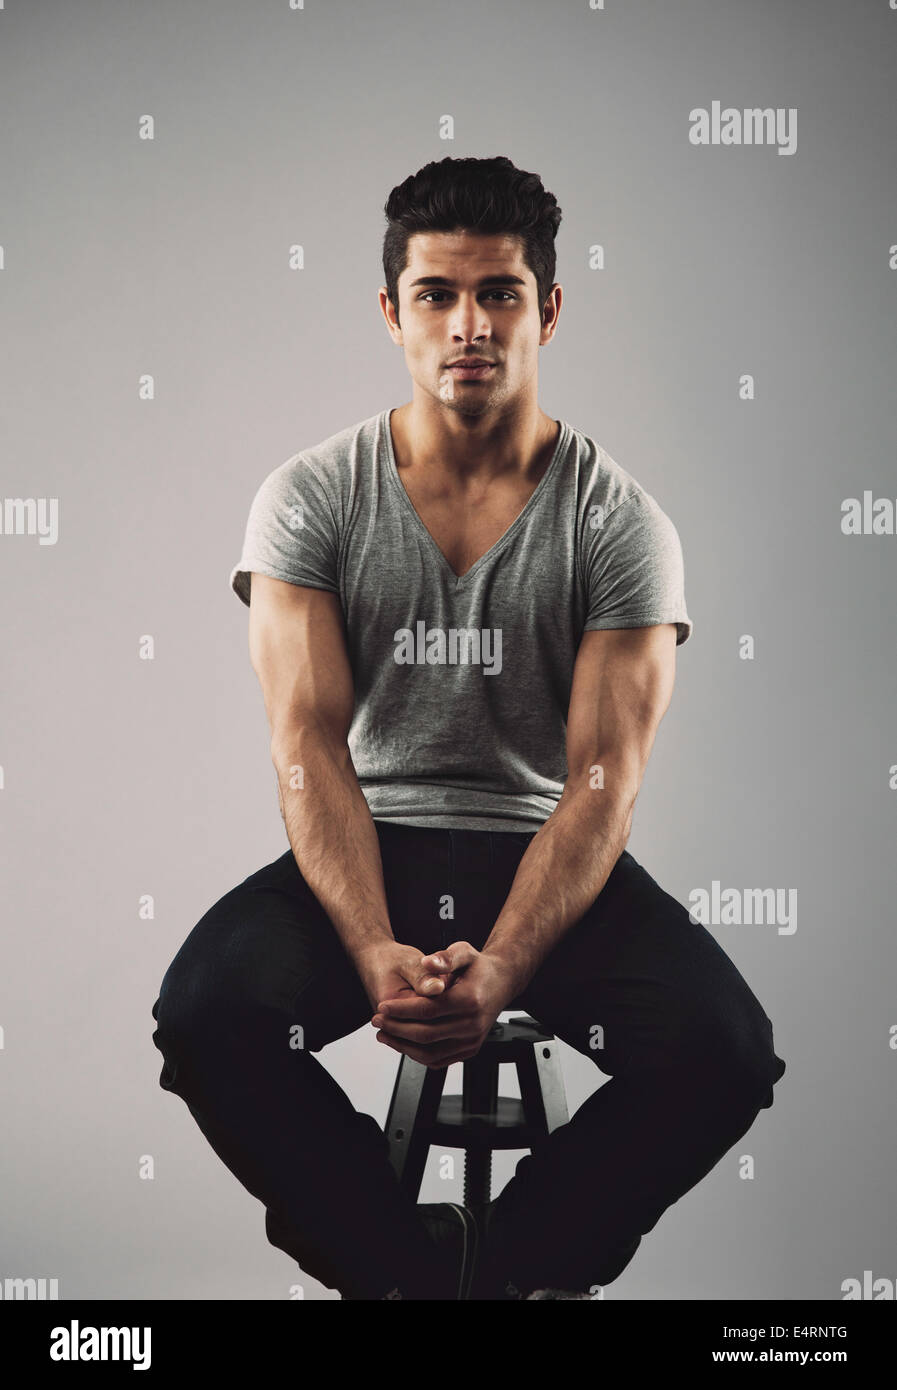 Portrait of muscular young male model sitting on stool. Hispanic young man over grey background. - Stock Image